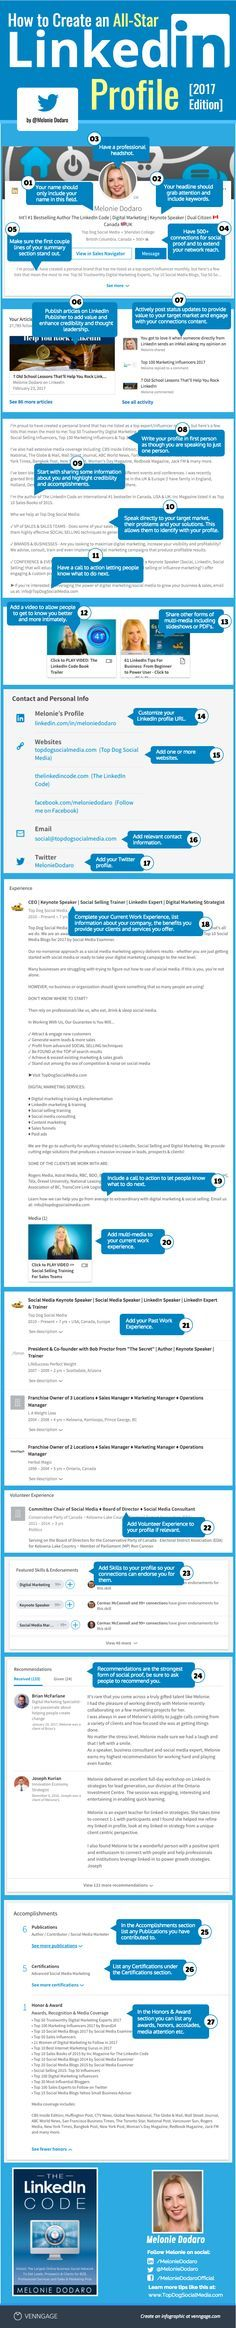 How to Create an All-Star #LinkedIn Profile #Infographic - create resume from linkedin